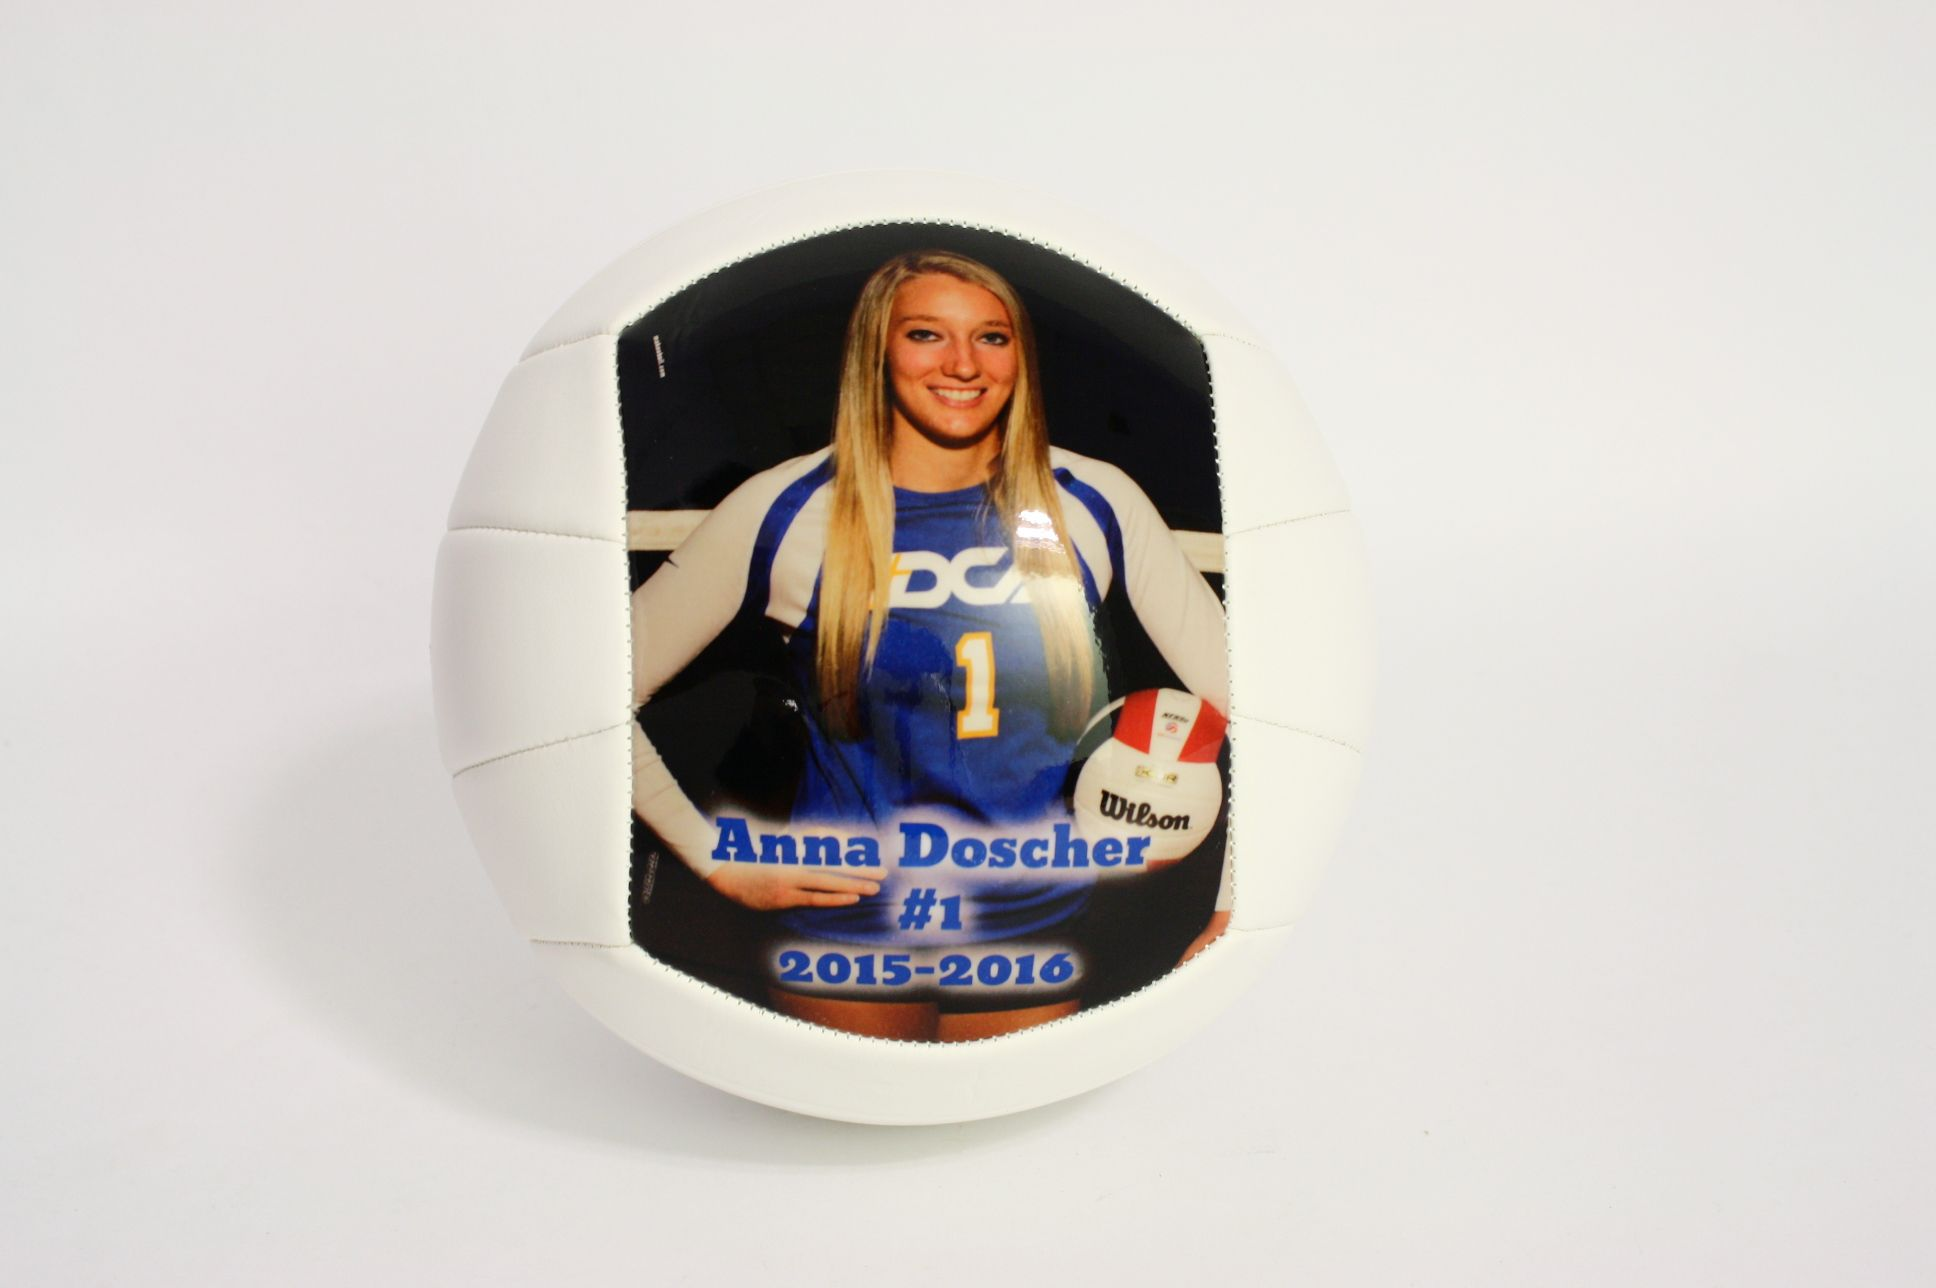 Unique Customized Volleyball Perfect Gift For Your Loved Ones For Any Occasion Birthday Anniversary Valentine S Volleyball Gifts Sports Balls Sports Gifts